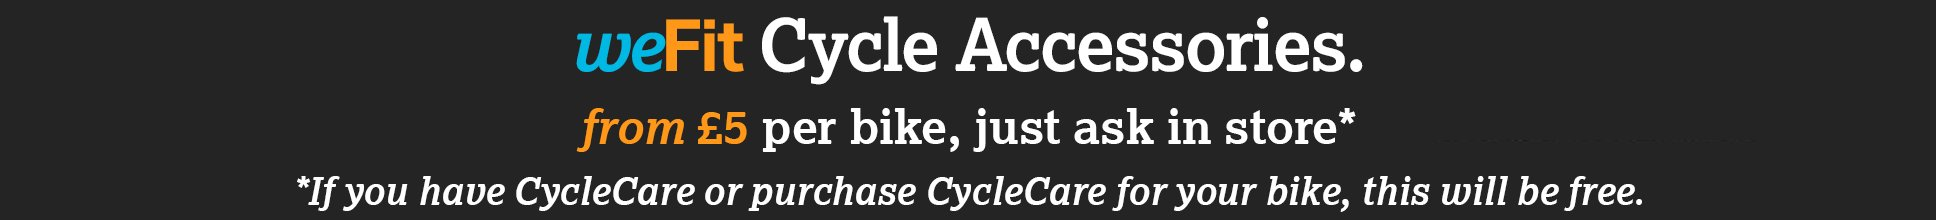 15 Off Cycle Accessories